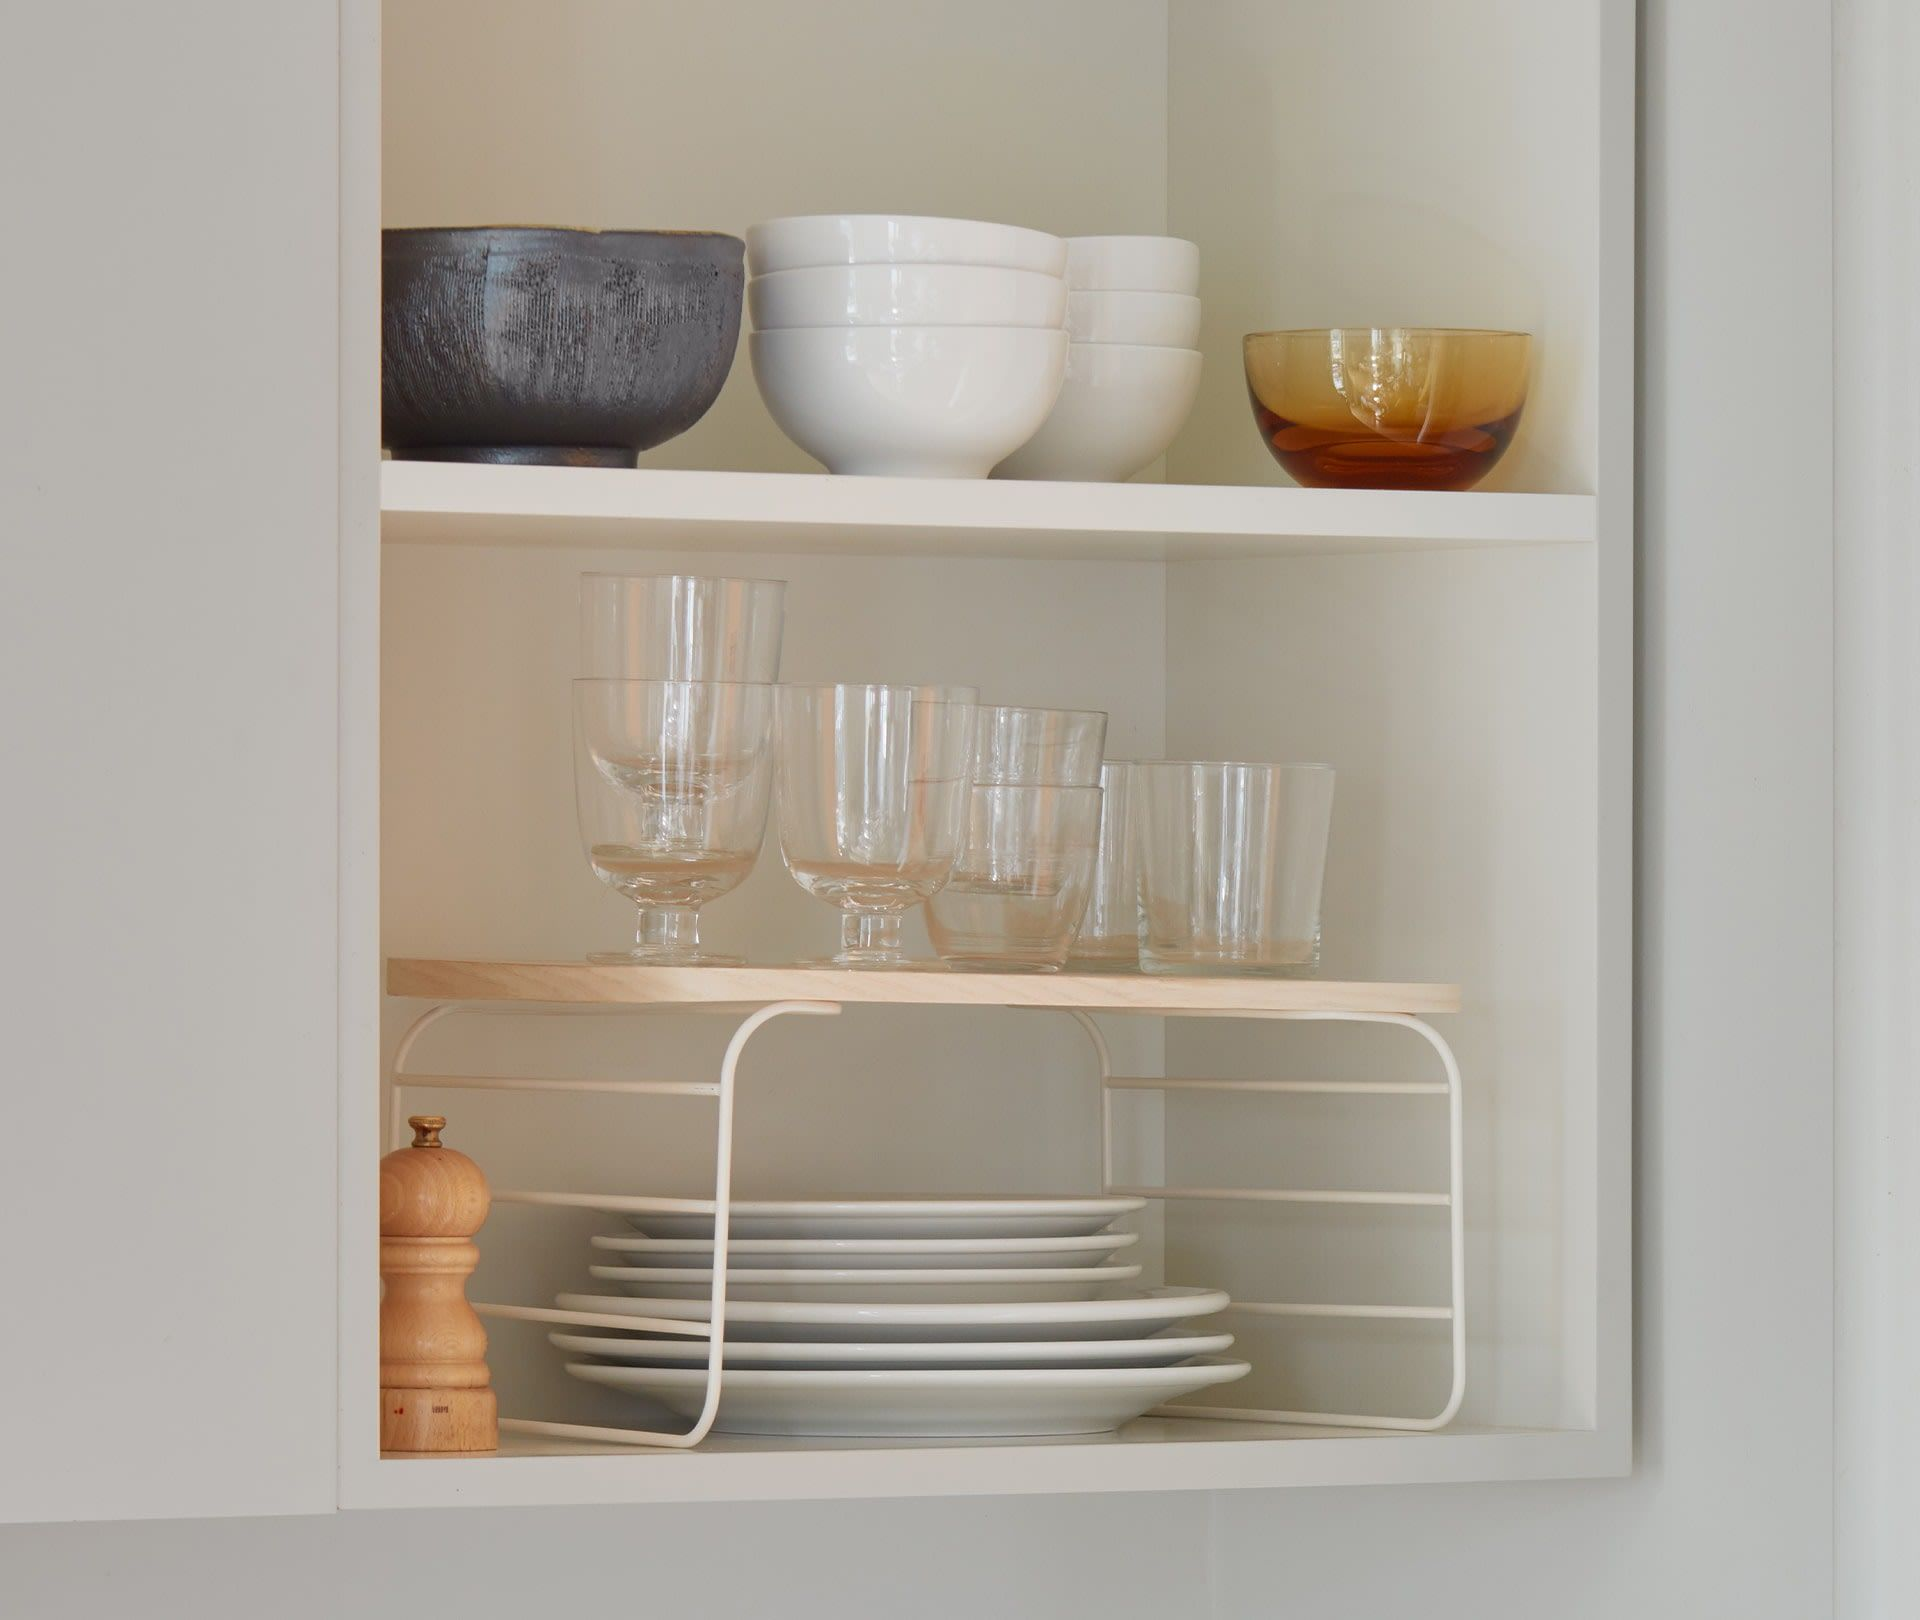 Shelf Risers Create Space To Enjoy In 2020 Shelves Storage Spaces Home Accessories